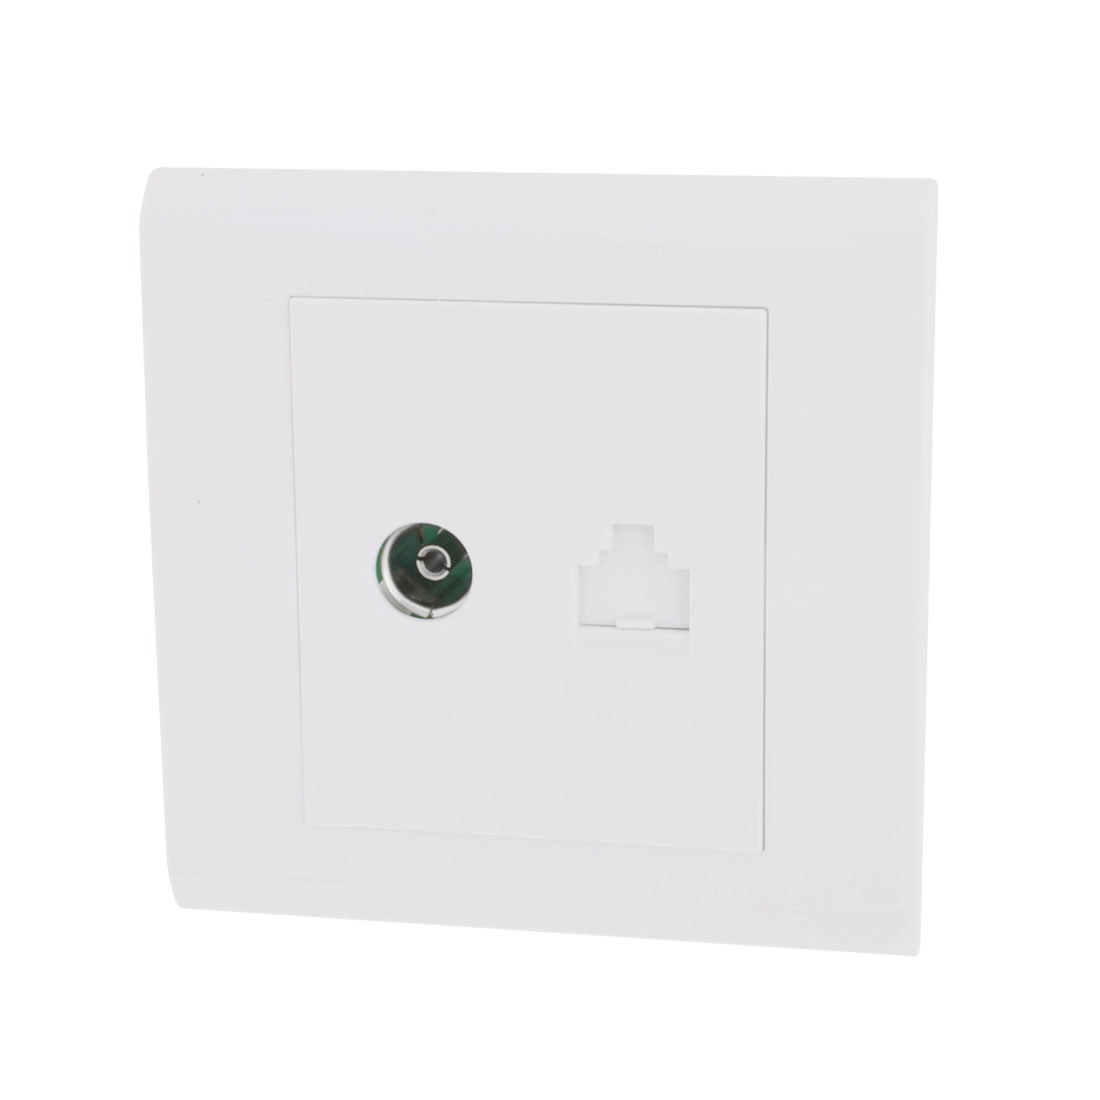 Office White Computer Television TV RJ45 Network Outlet Wall Panel Plate